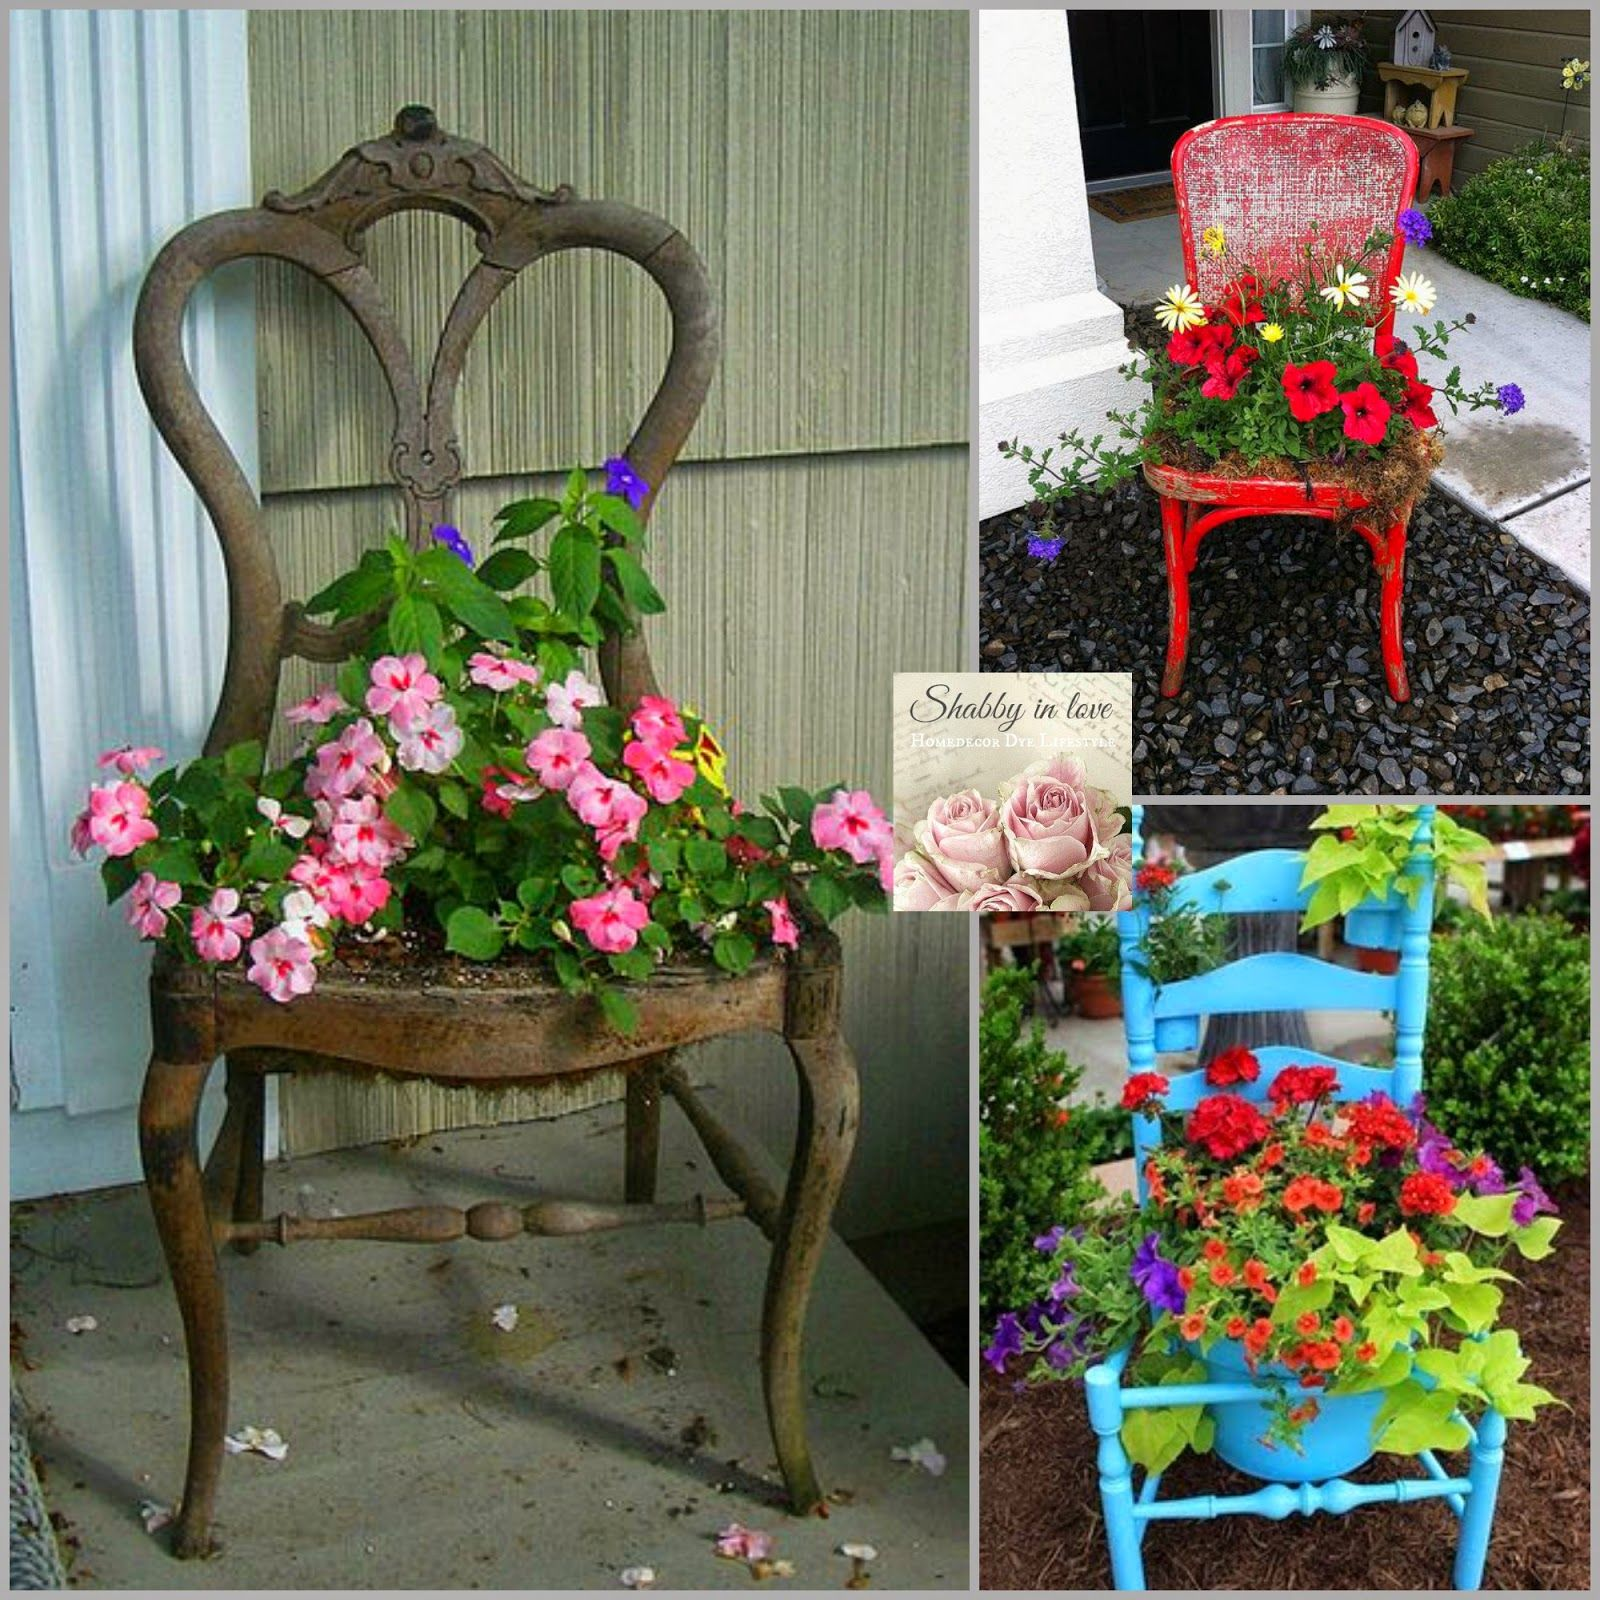 Shabby in love: Lovely garden Container ideas   Hanging Baskets ...